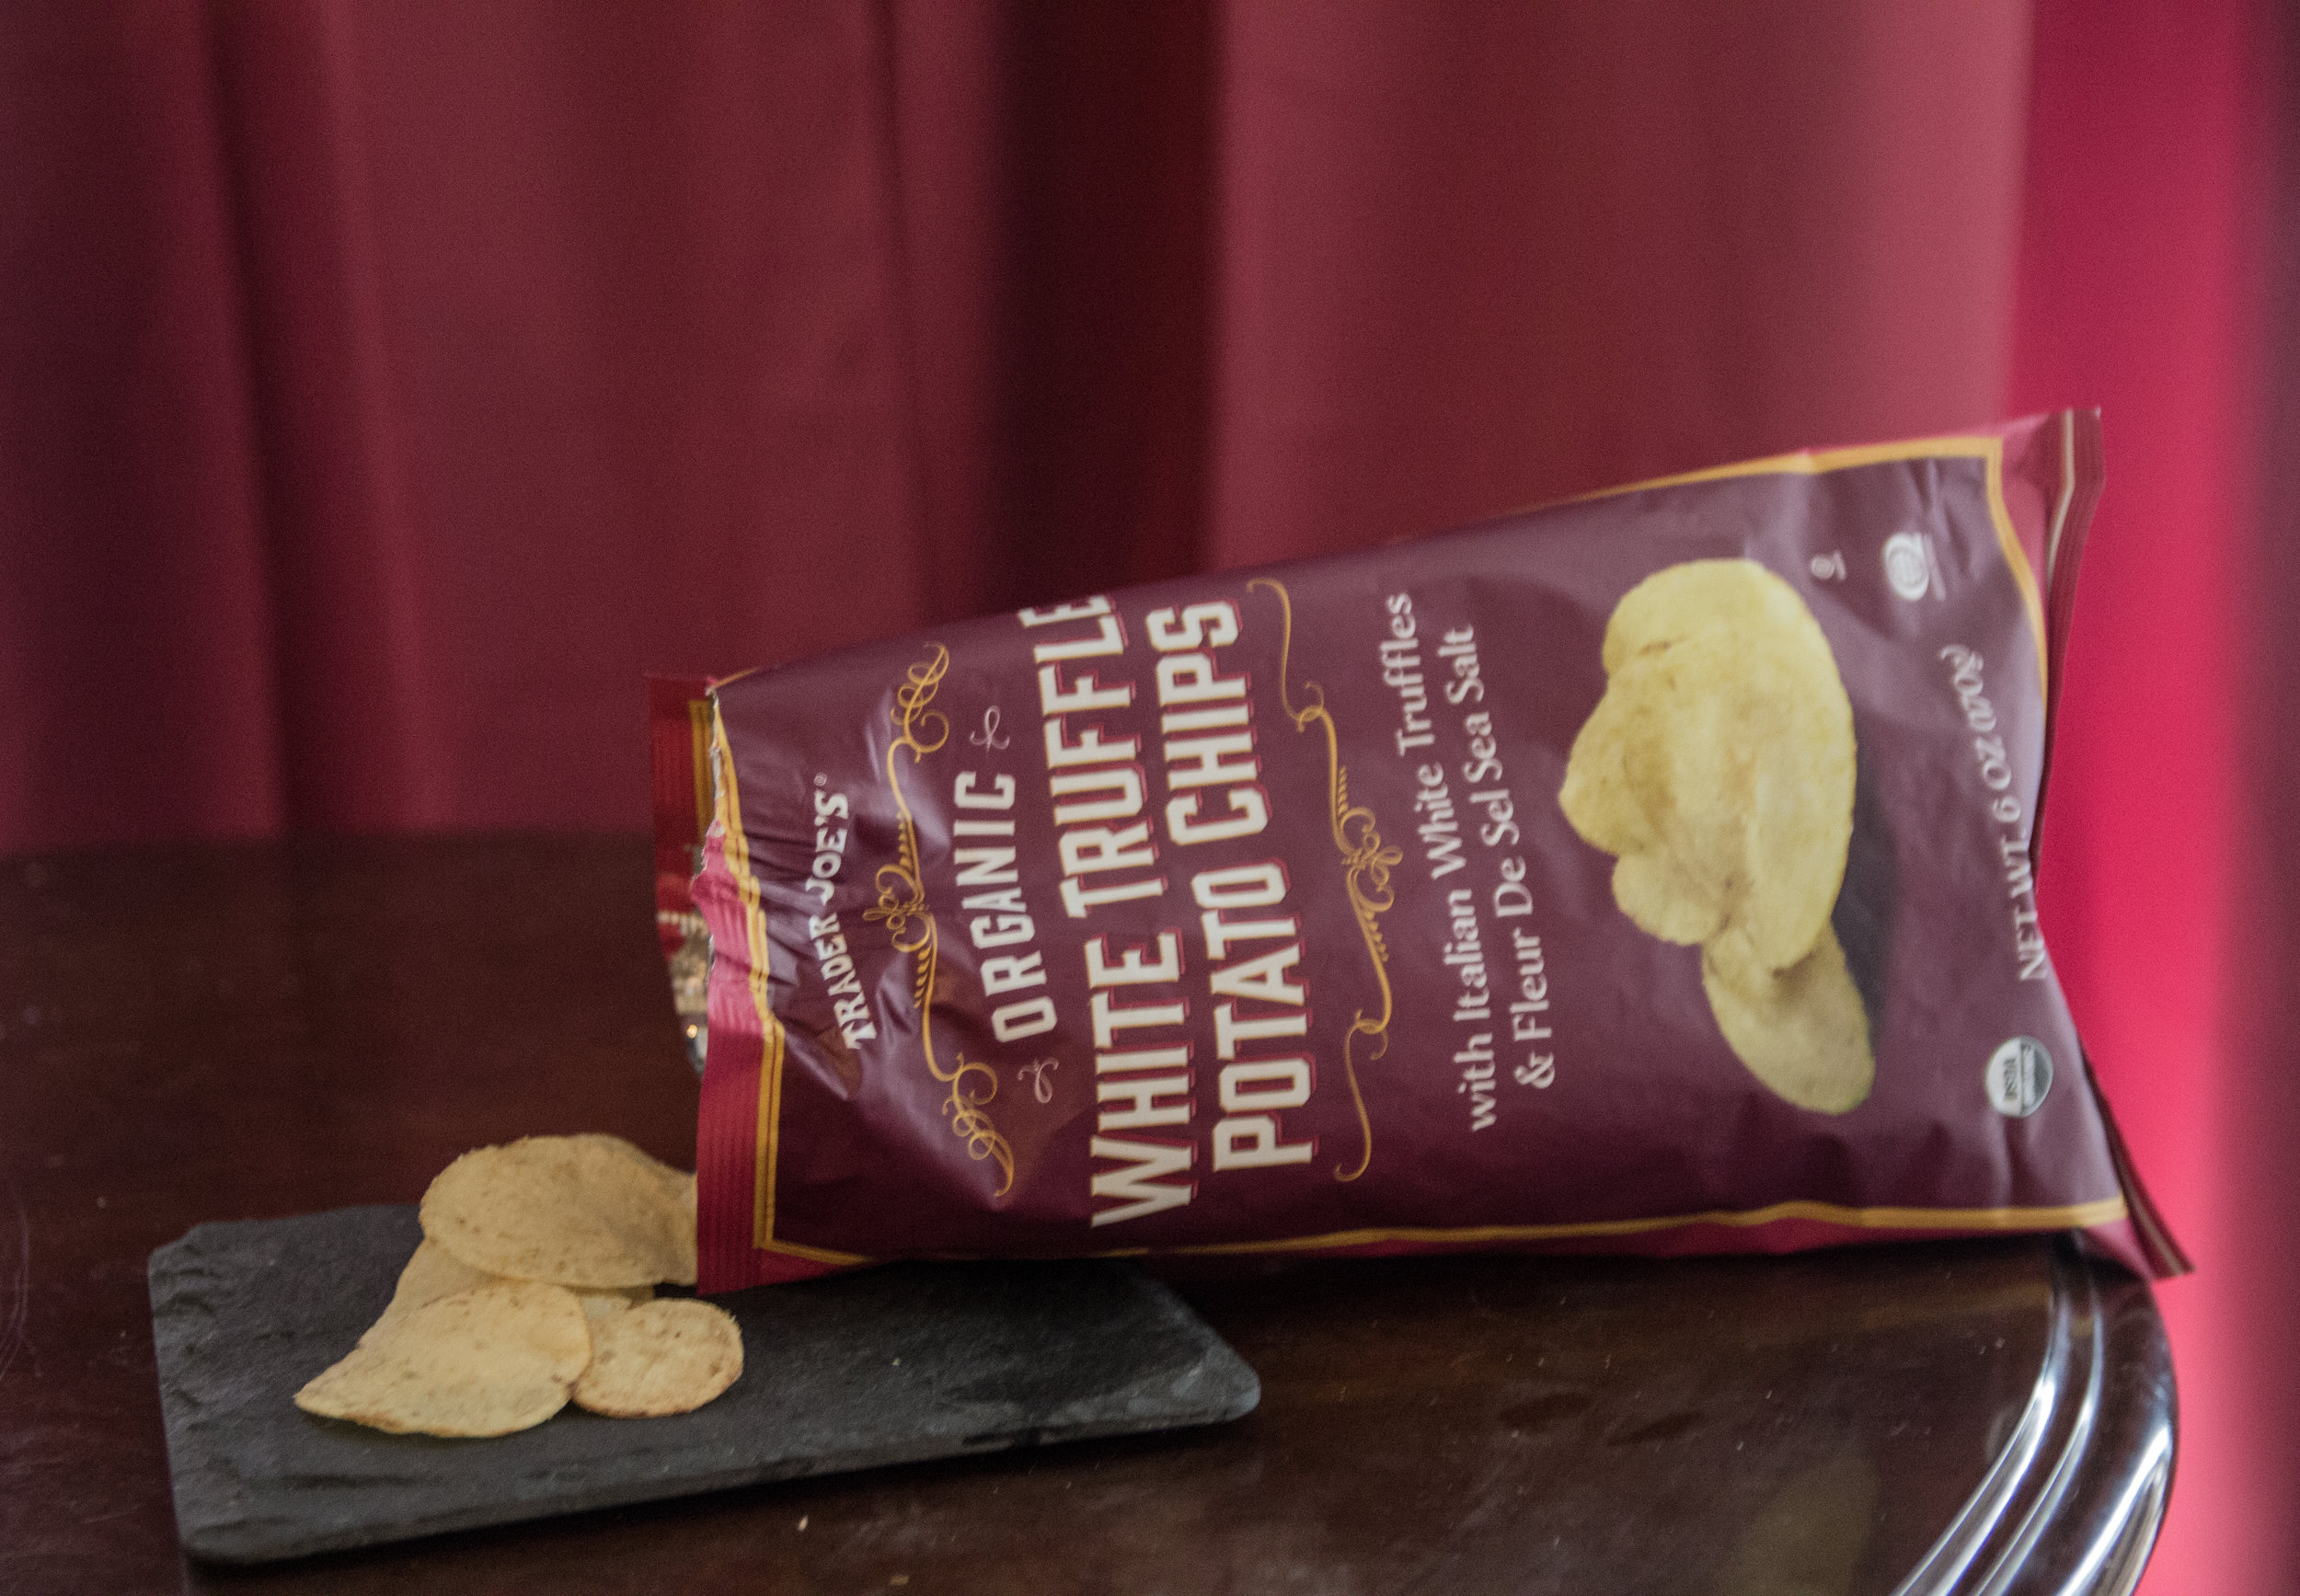 best things to buy from trader joe's, what to buy from trader joe's, favorite 13 items from Trader Joe's,  white truffle potato chips